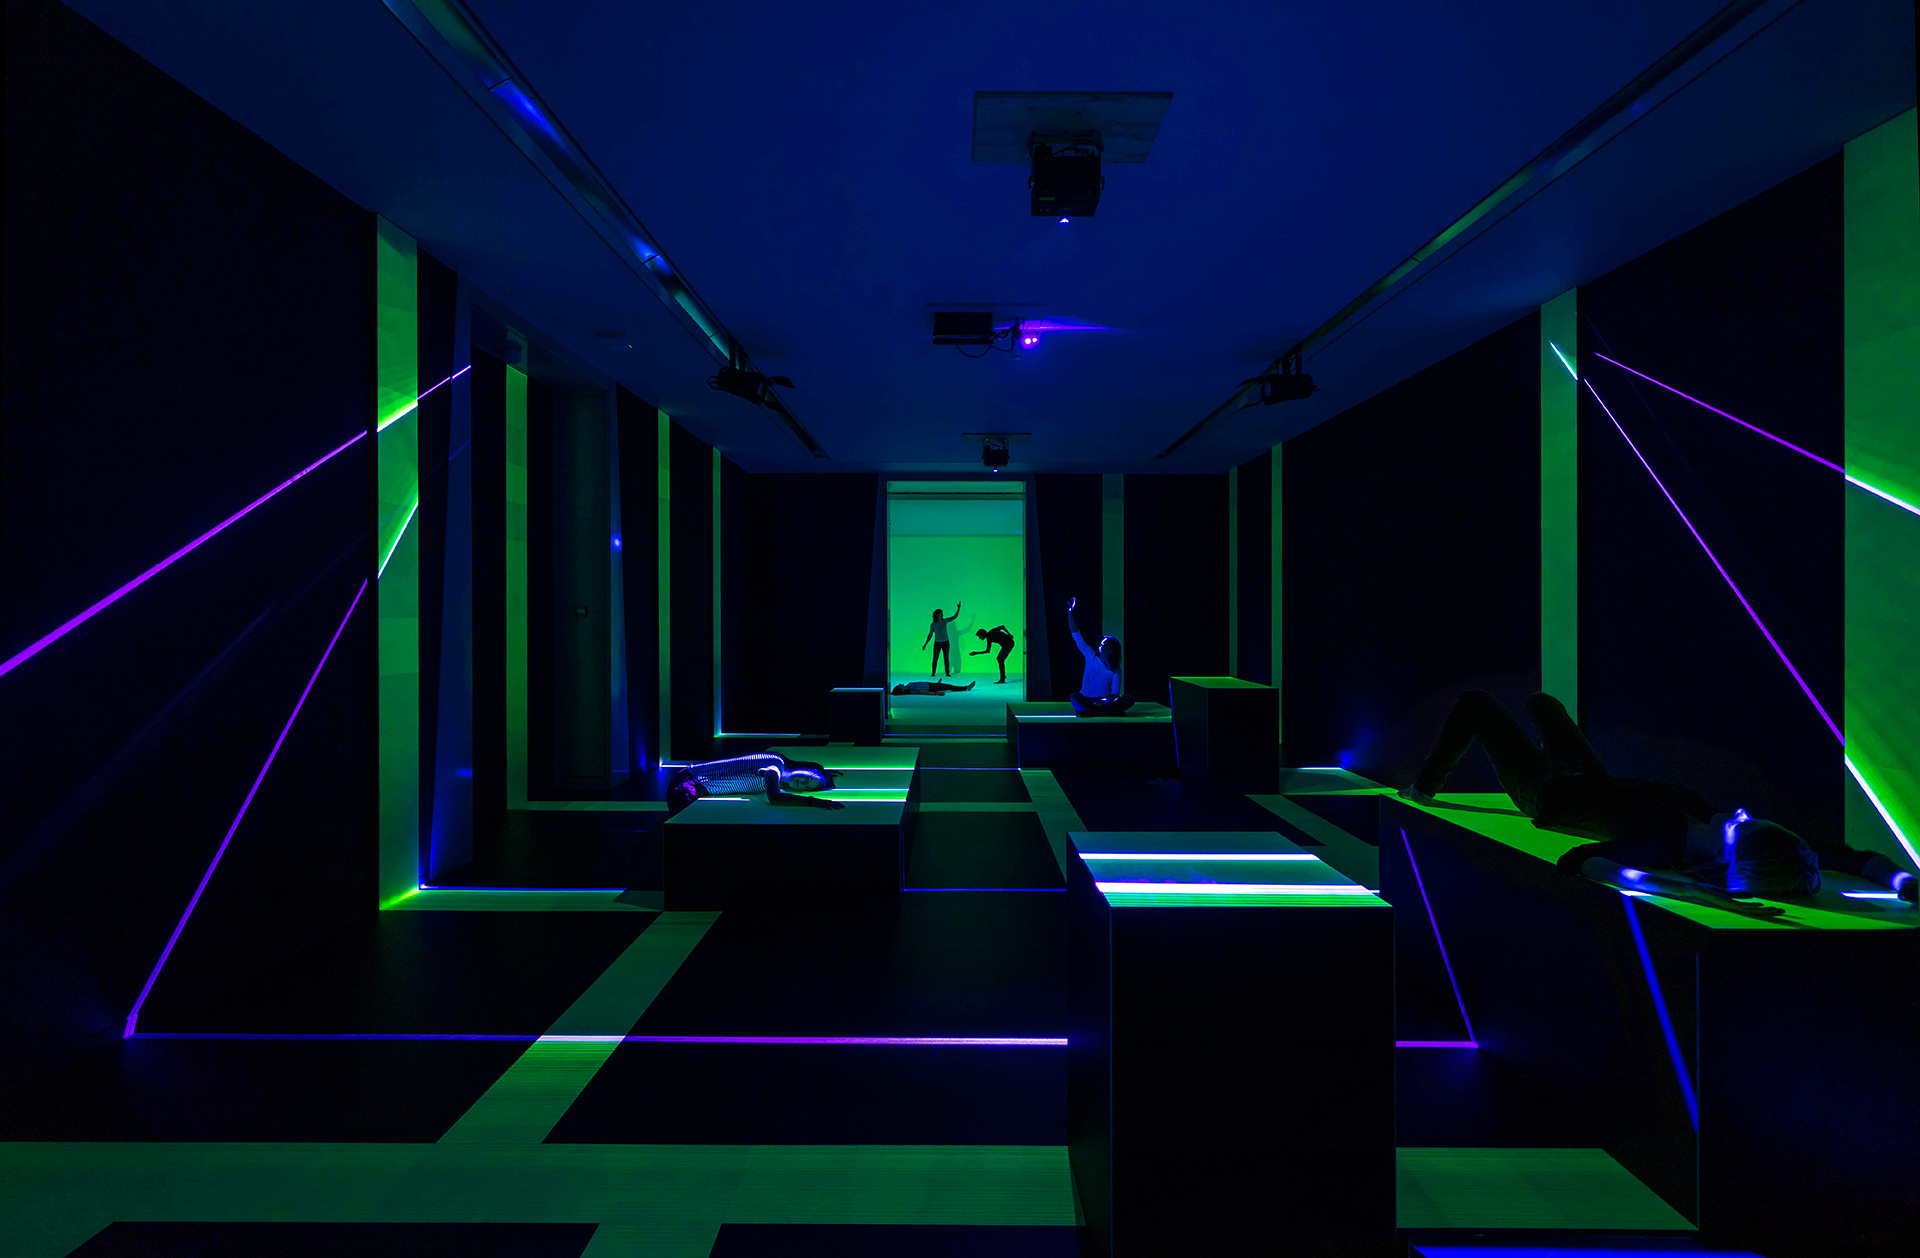 Light and light-sensitive elements make up this installation| Presence | Daan Roosegaarde | Groninger Museum| STIRworld